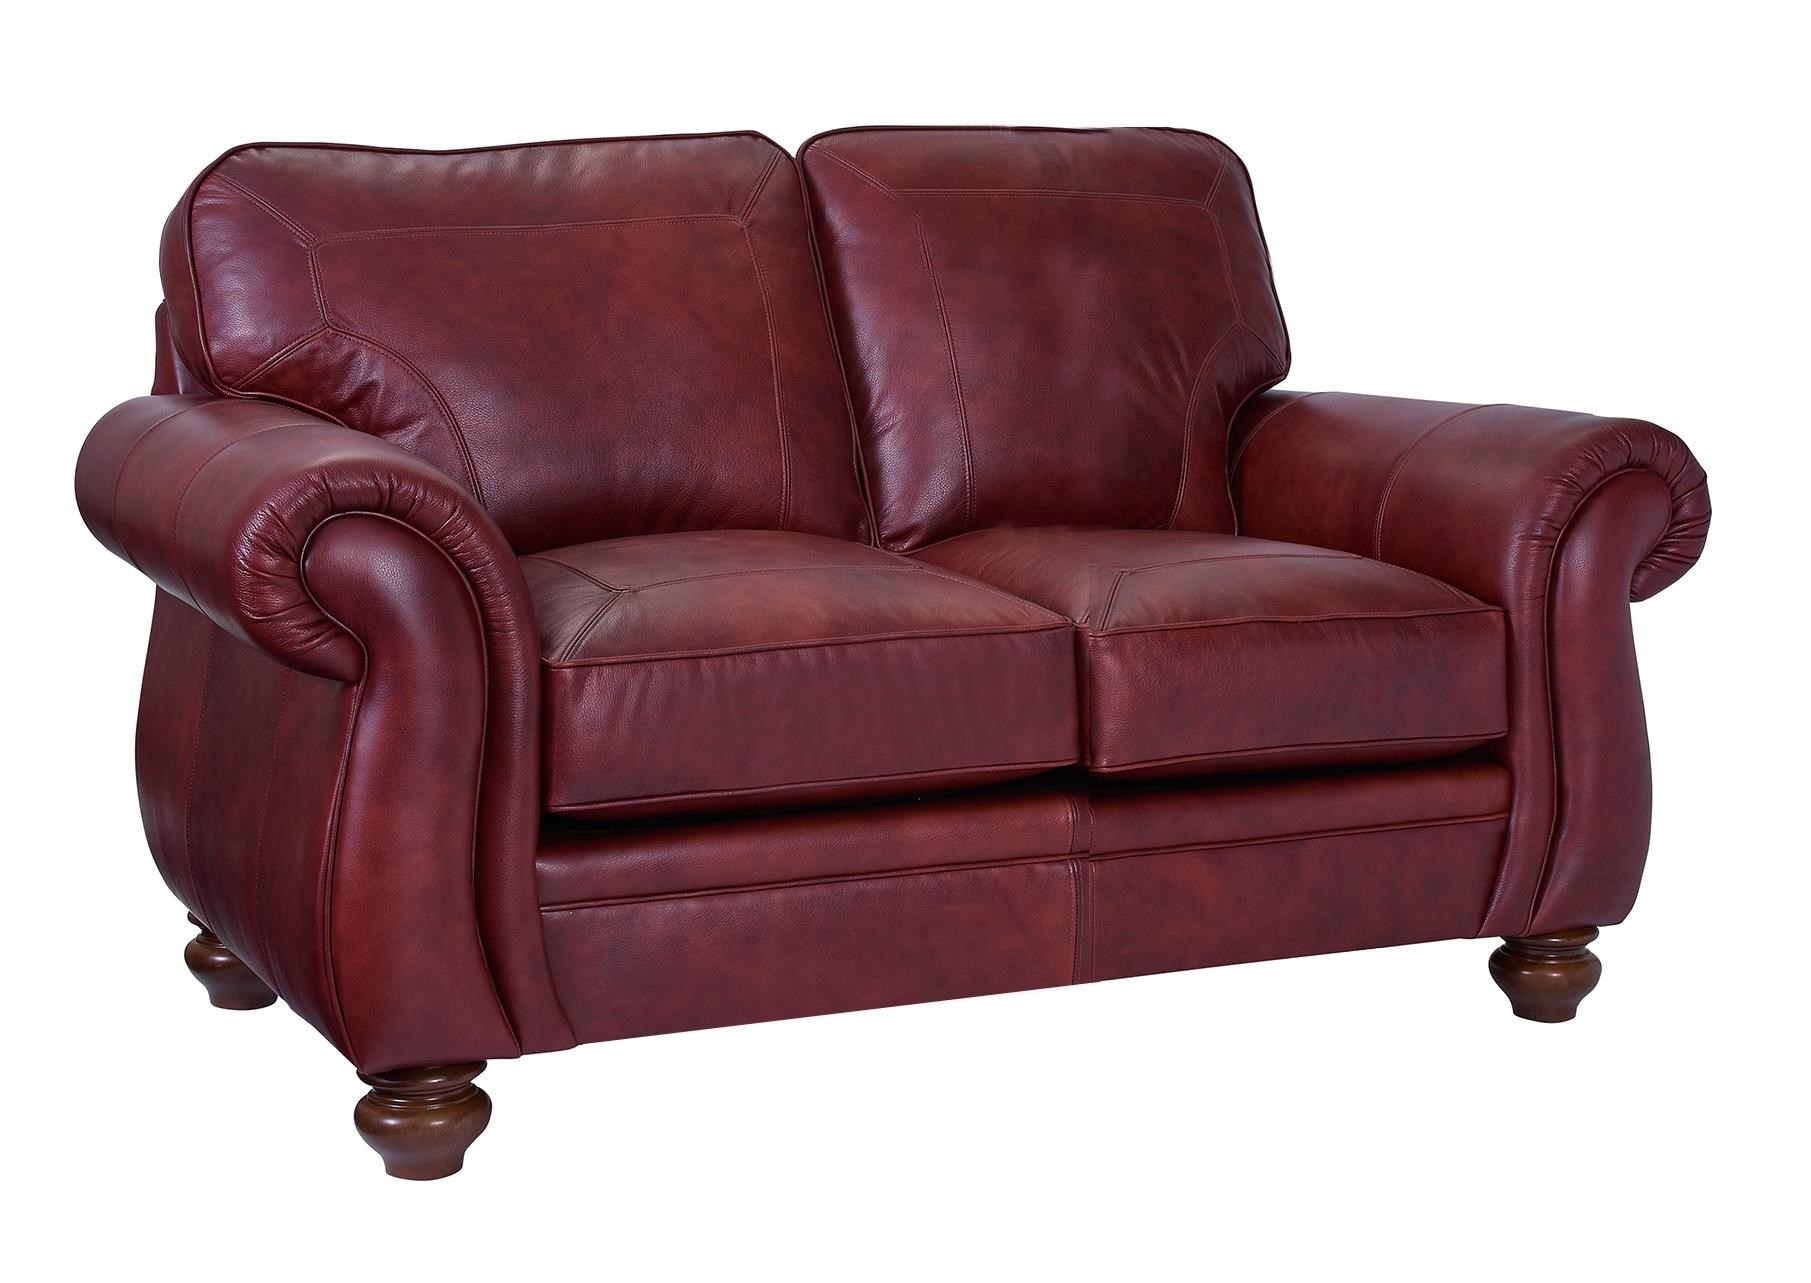 Charmant Broyhill Furniture CassandraTraditional Loveseat